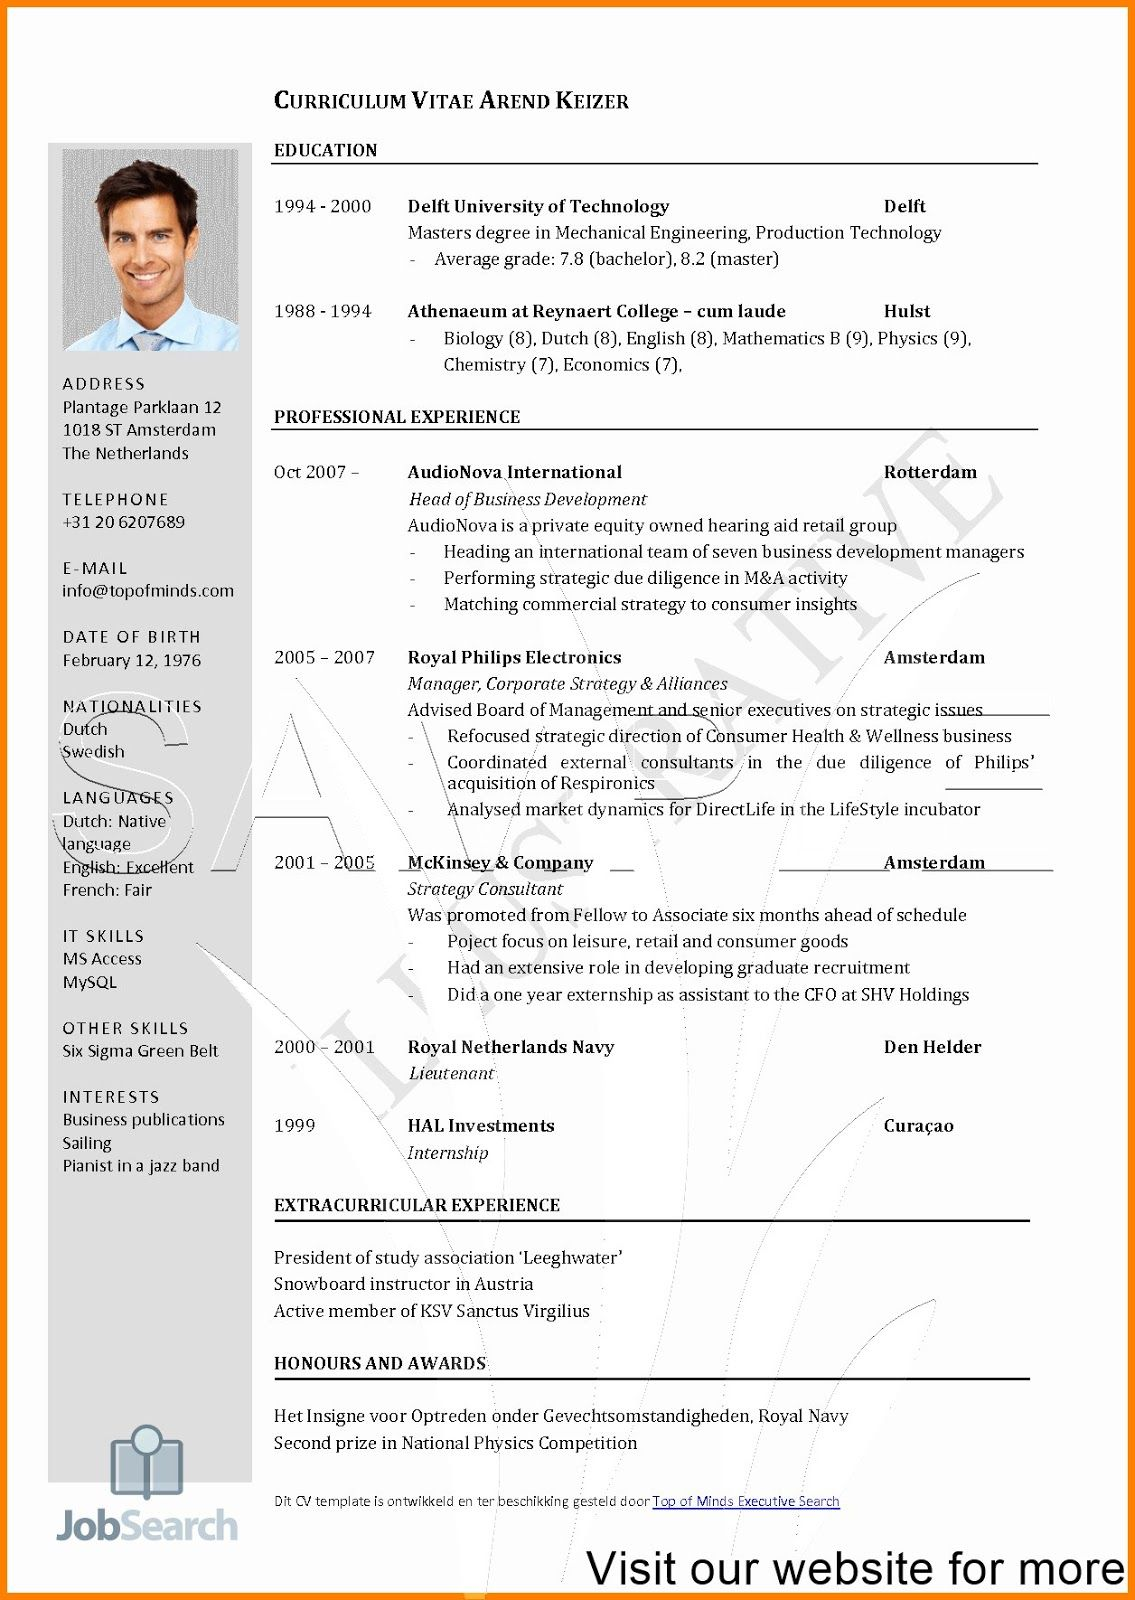 Resume Format Free Download In Ms Word Australia Resume Format Free Download Resu Downloadable Resume Template Resume Format For Freshers Free Resume Examples